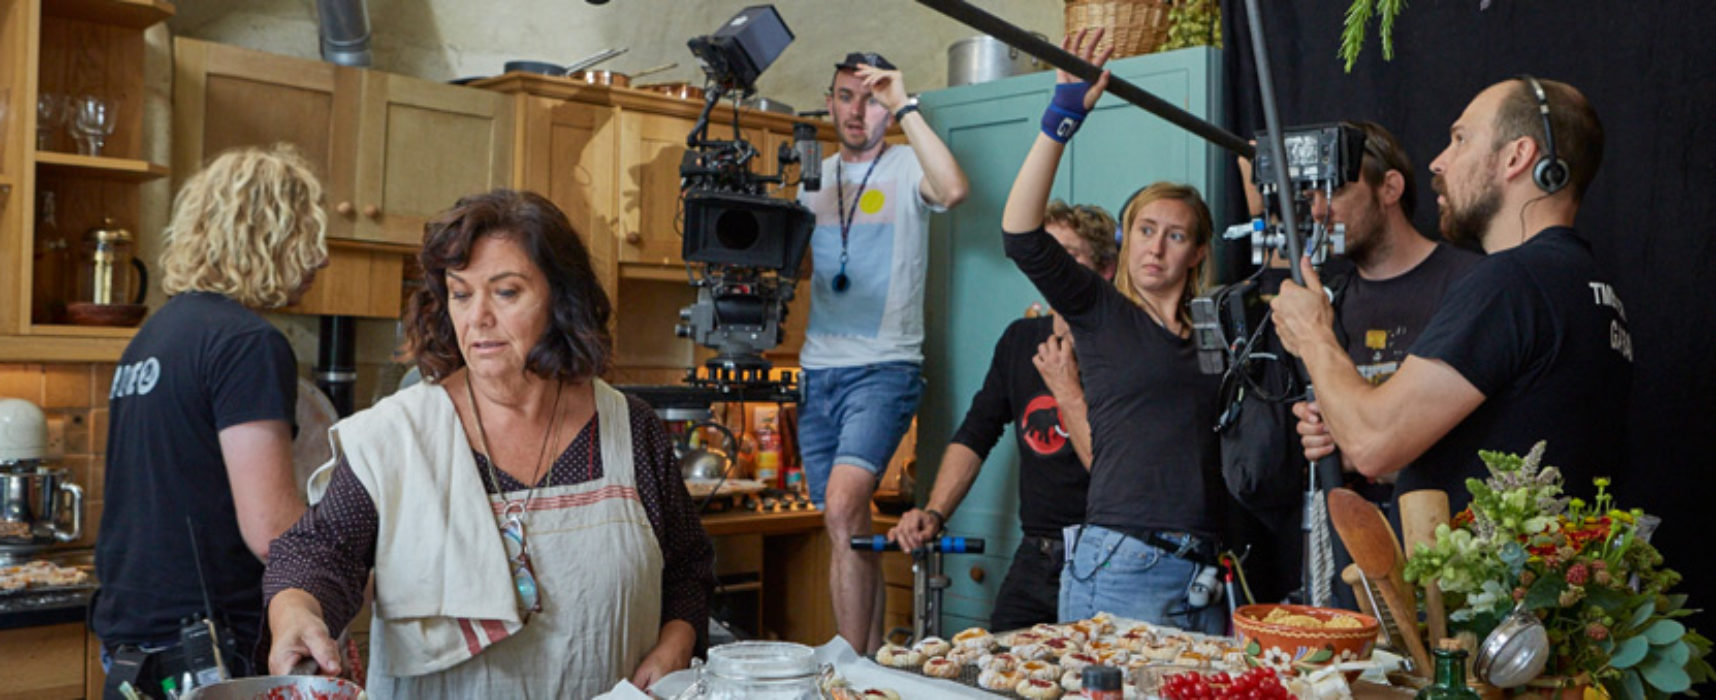 Sky 1 to air second series of Delicious drama